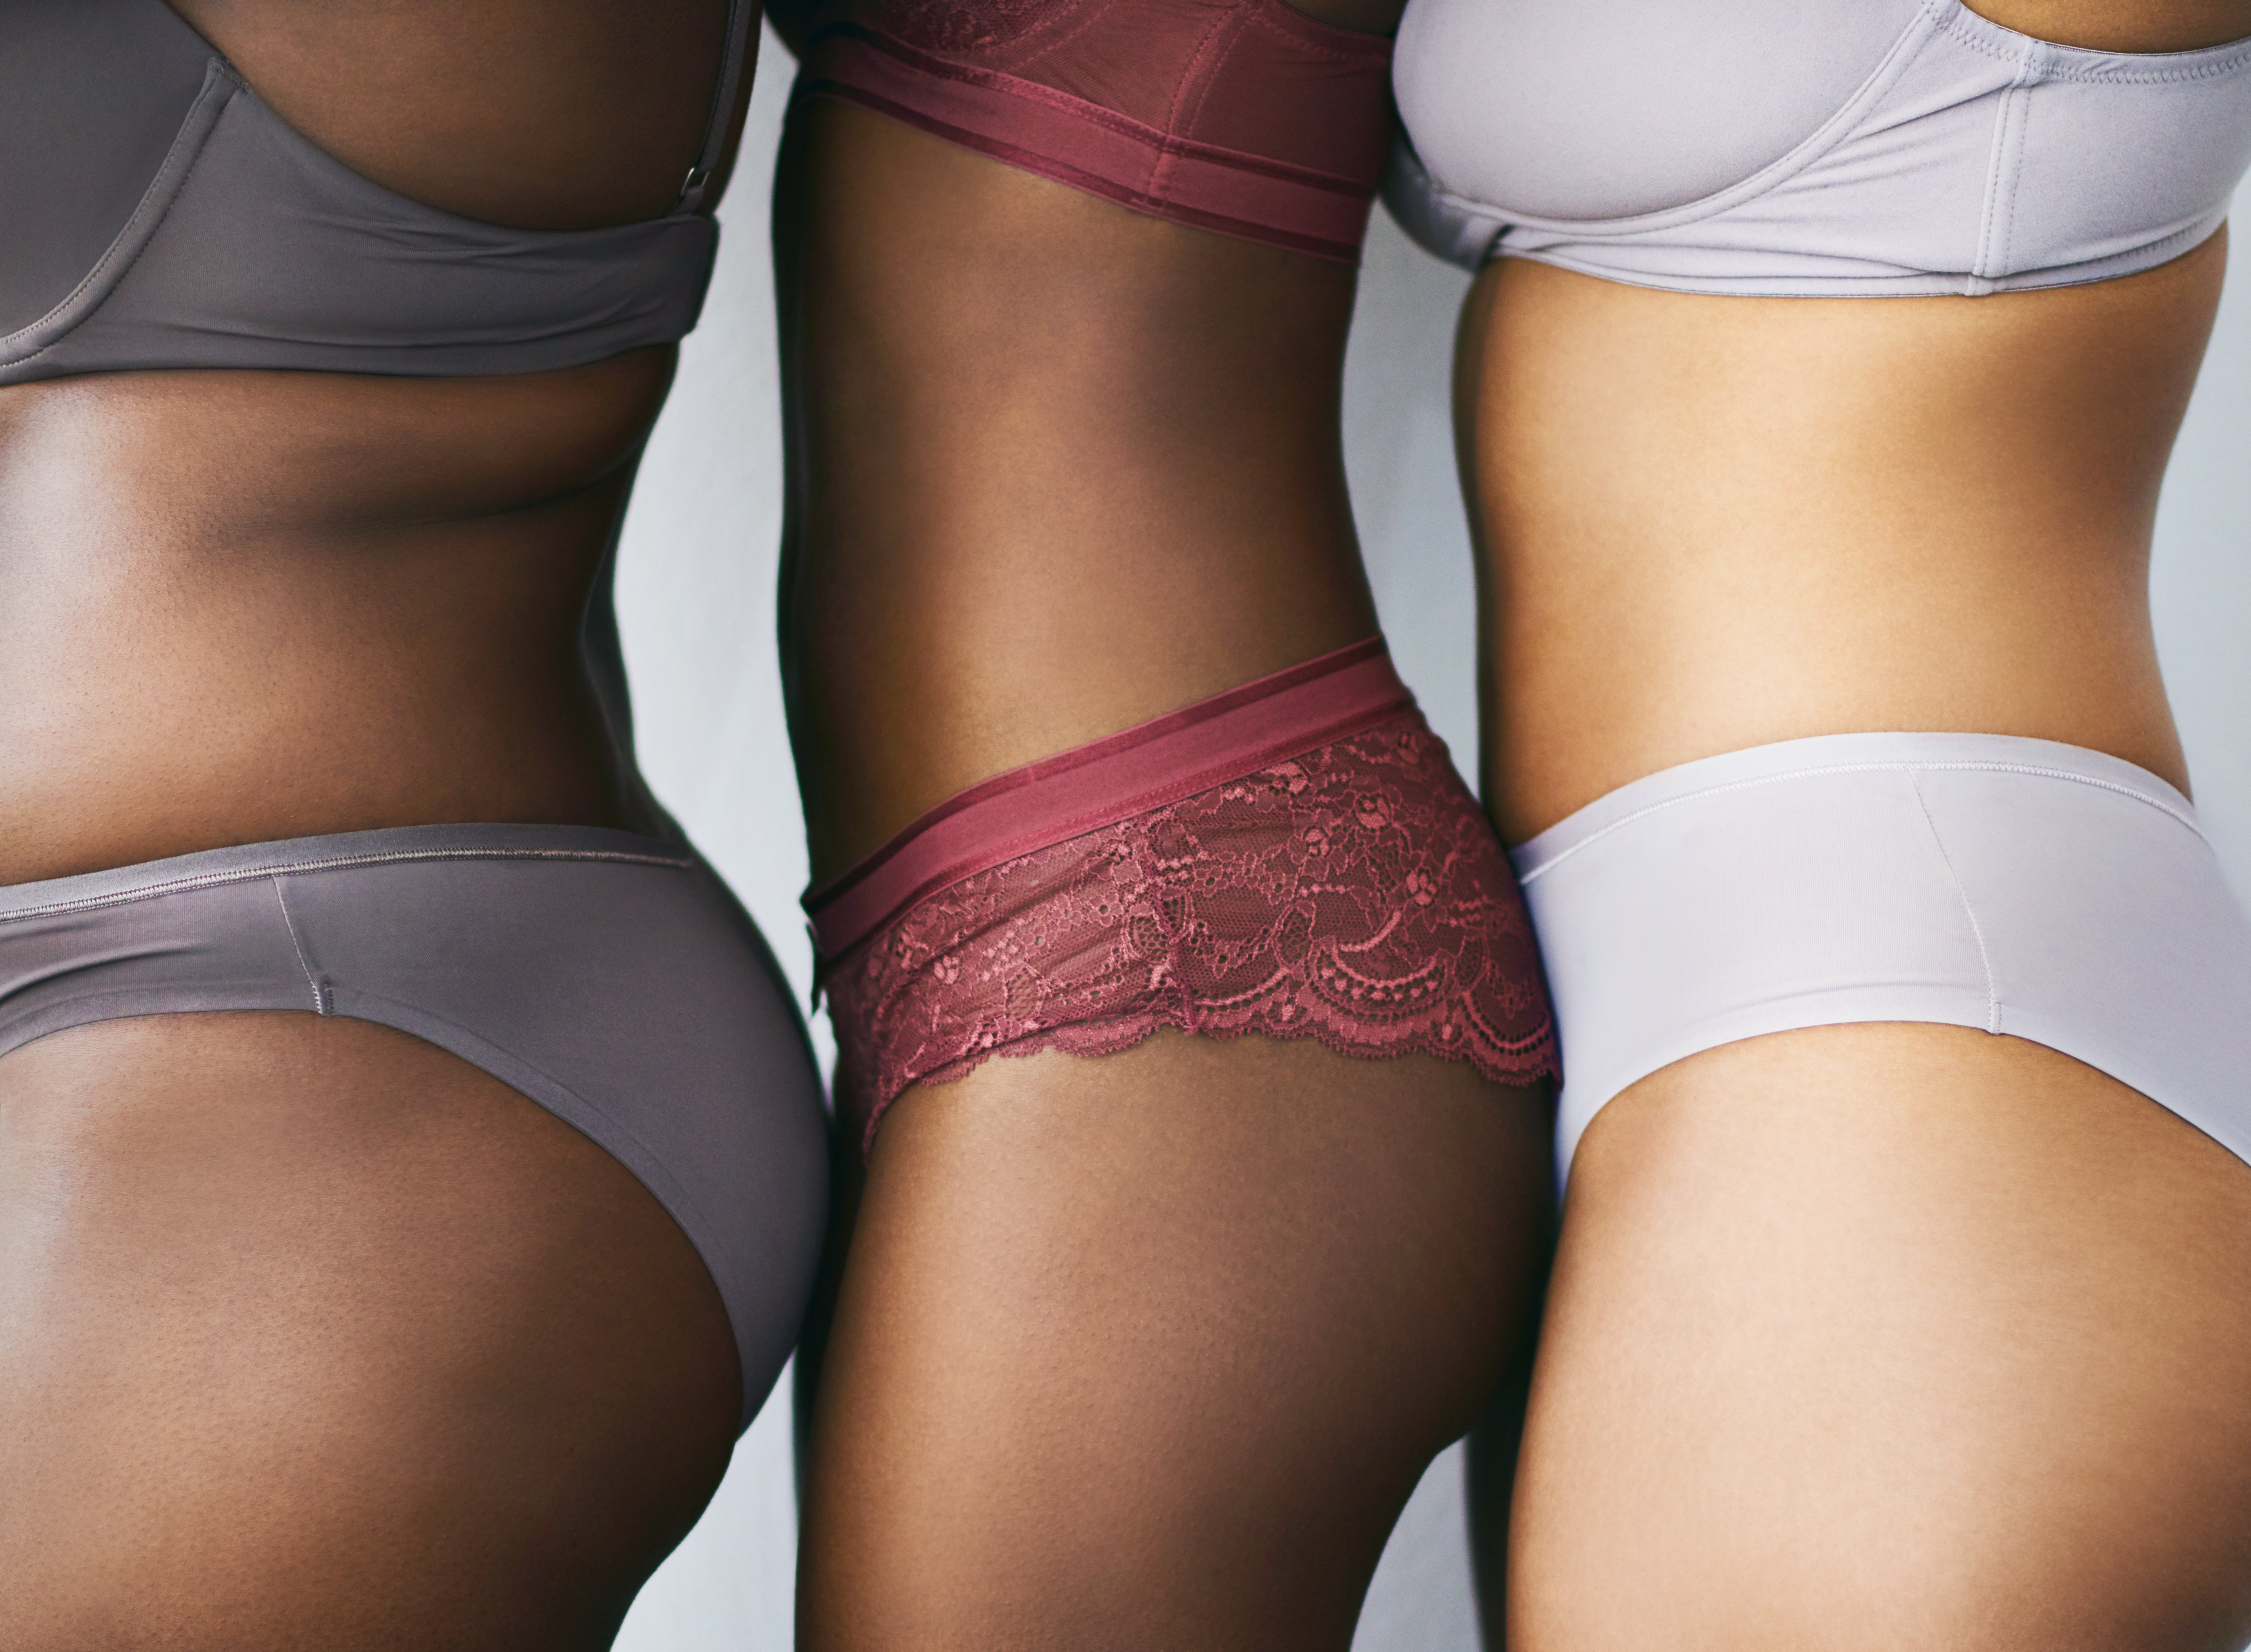 Ask An OB-GYN: How Long Should I Keep My Underwear Before They're No Good?